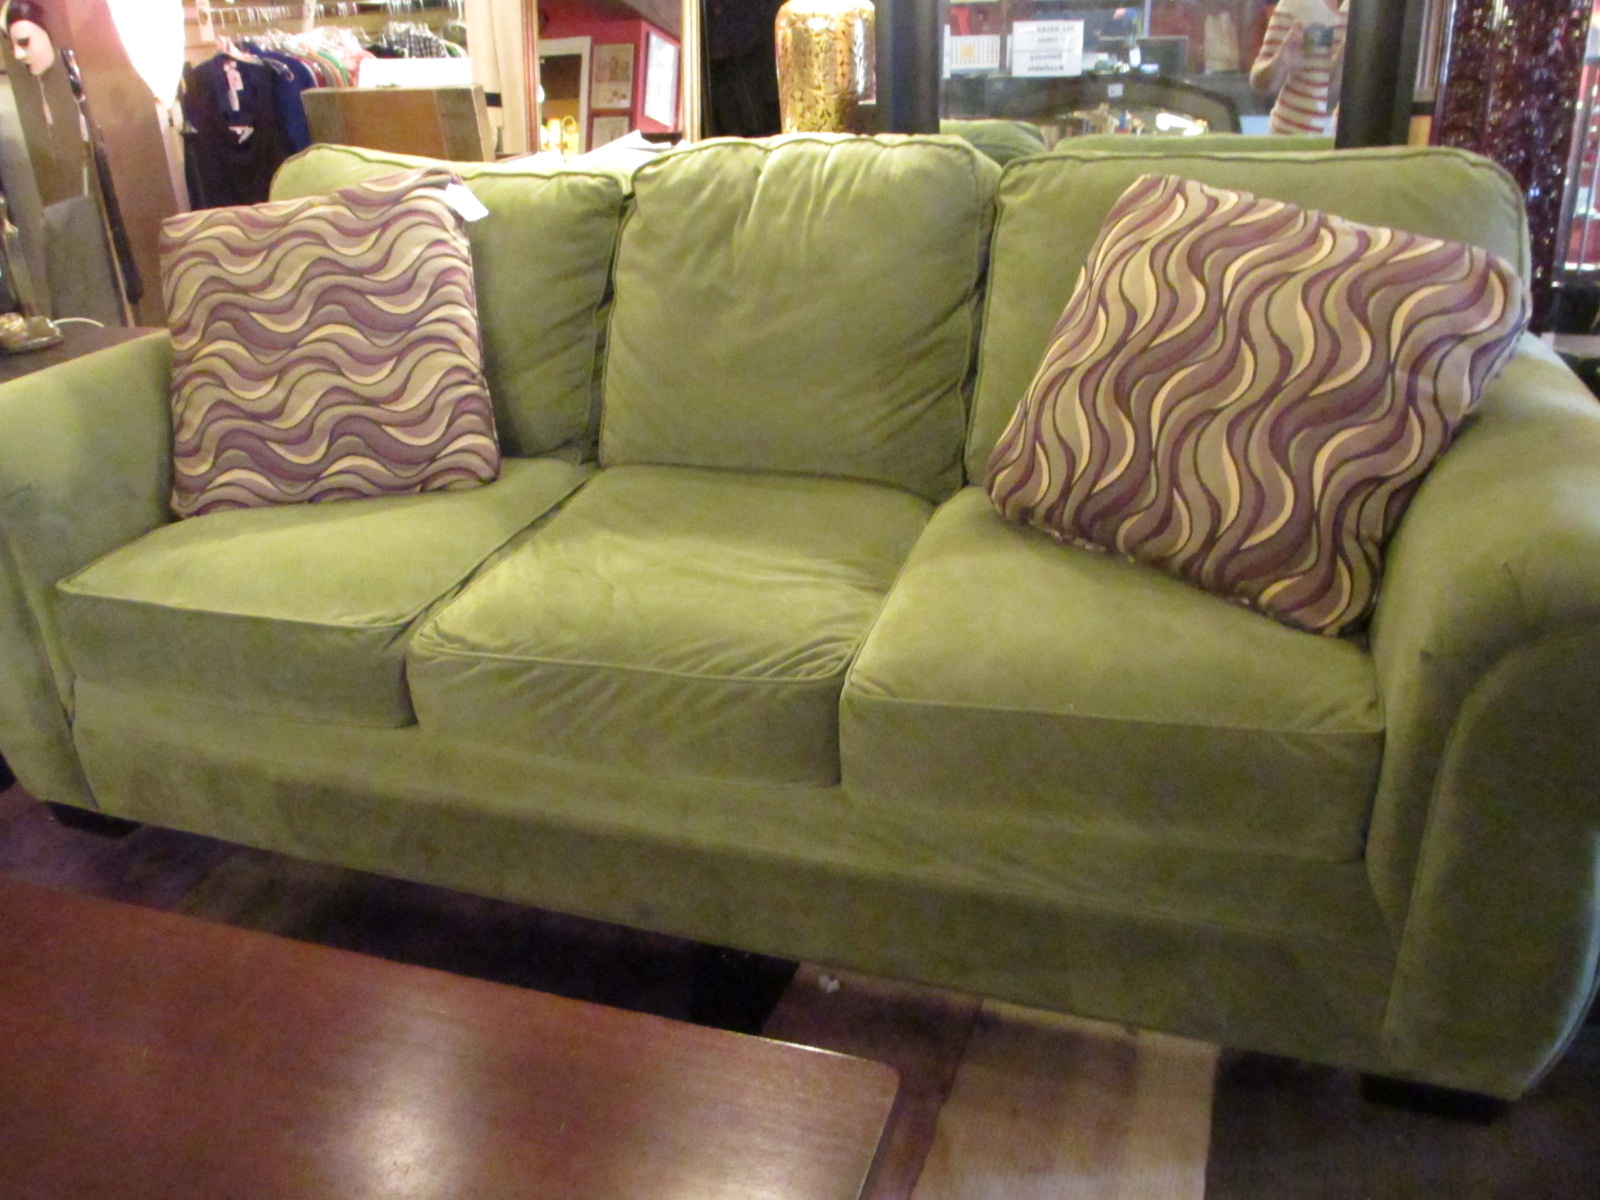 Green Couch Design And Cool Pillow Design